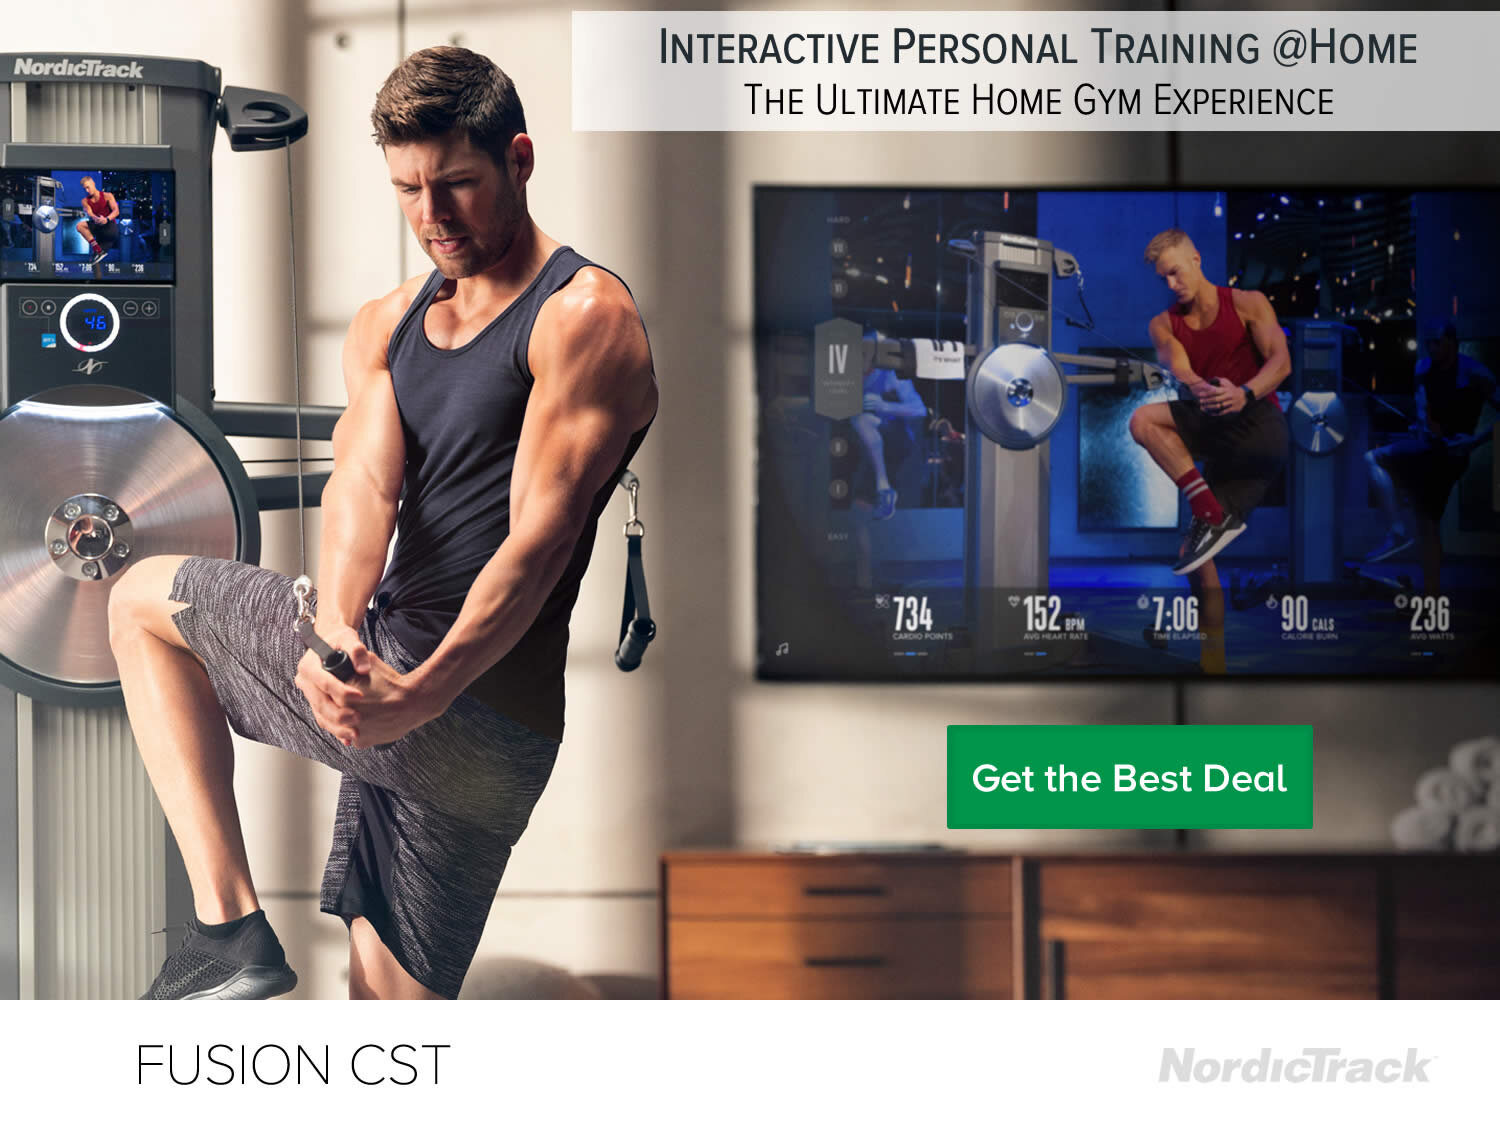 Nordictrack Fusion CST interactive strength Training at Home